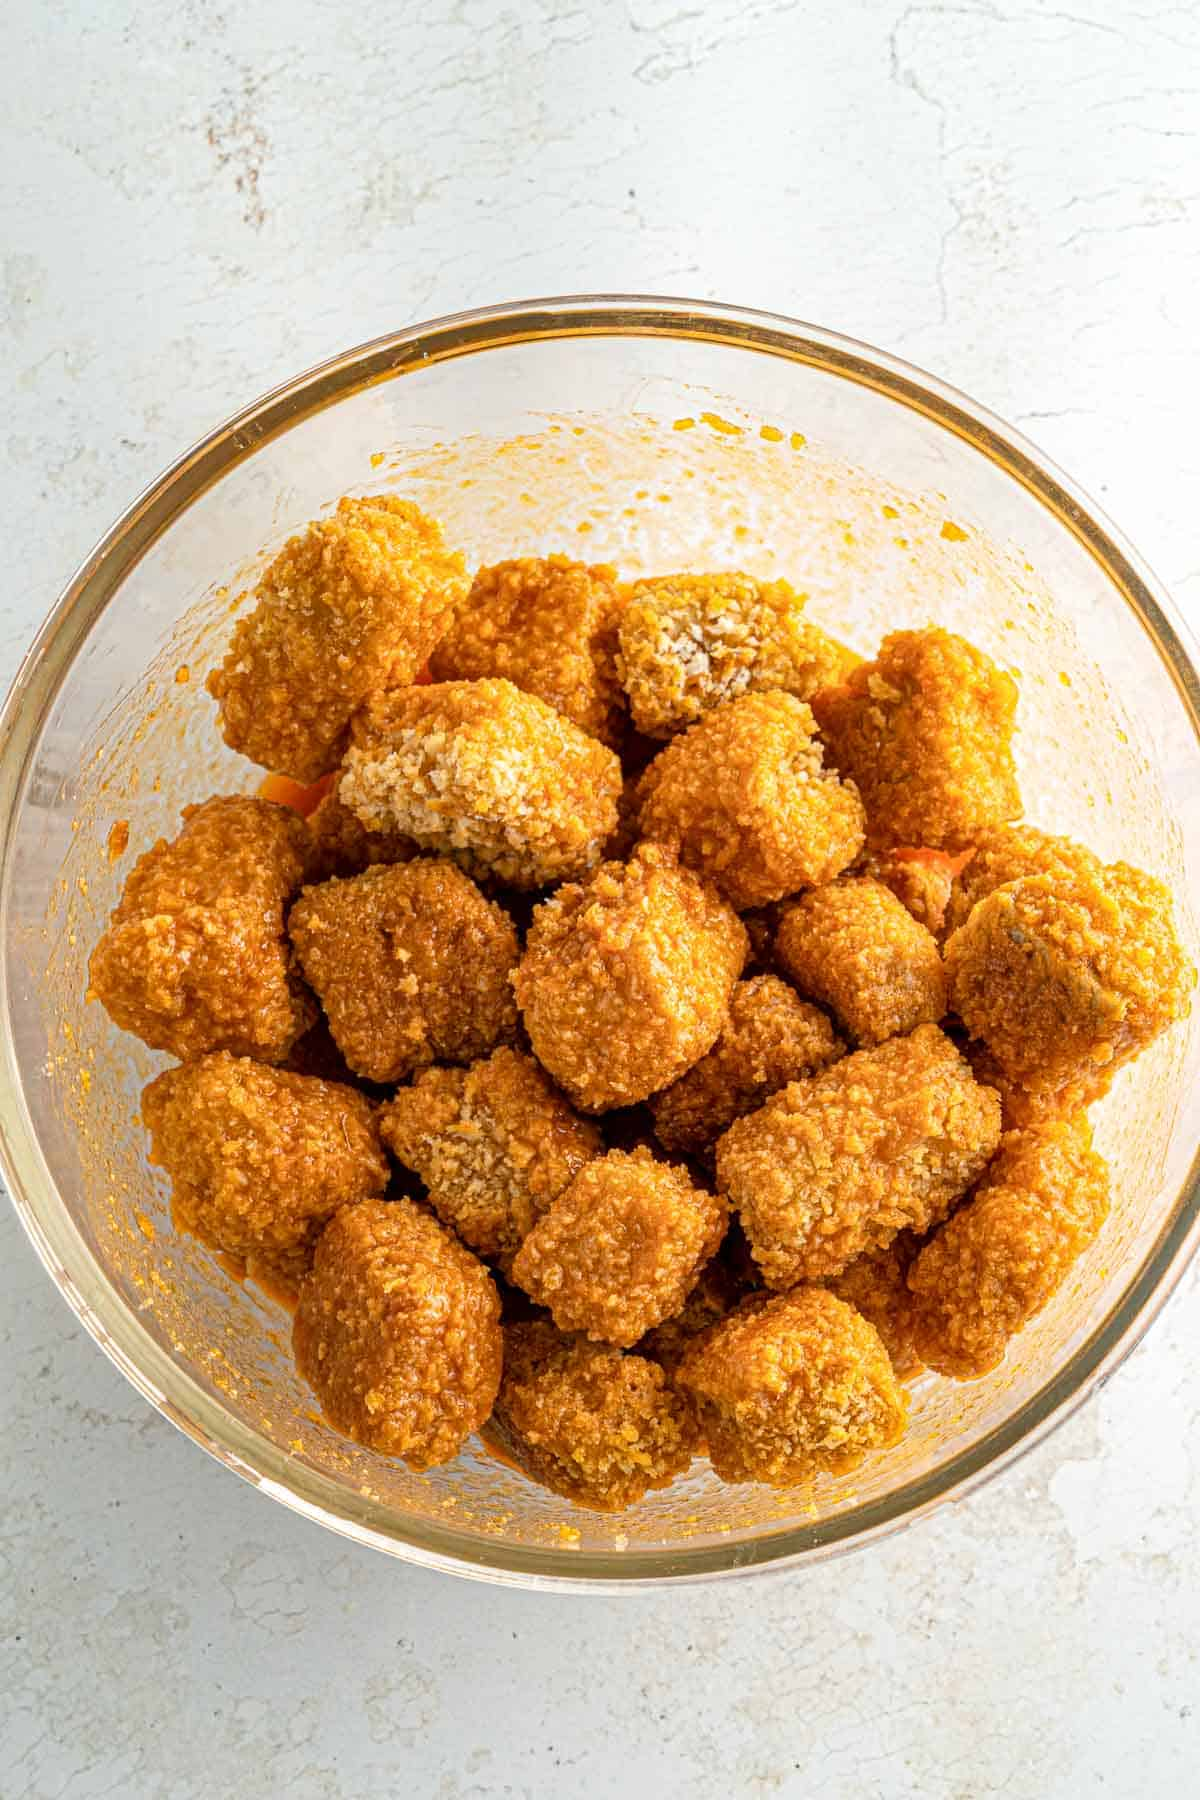 Bowl of crispy baked tofu nuggets tossed with buffalo sauce.